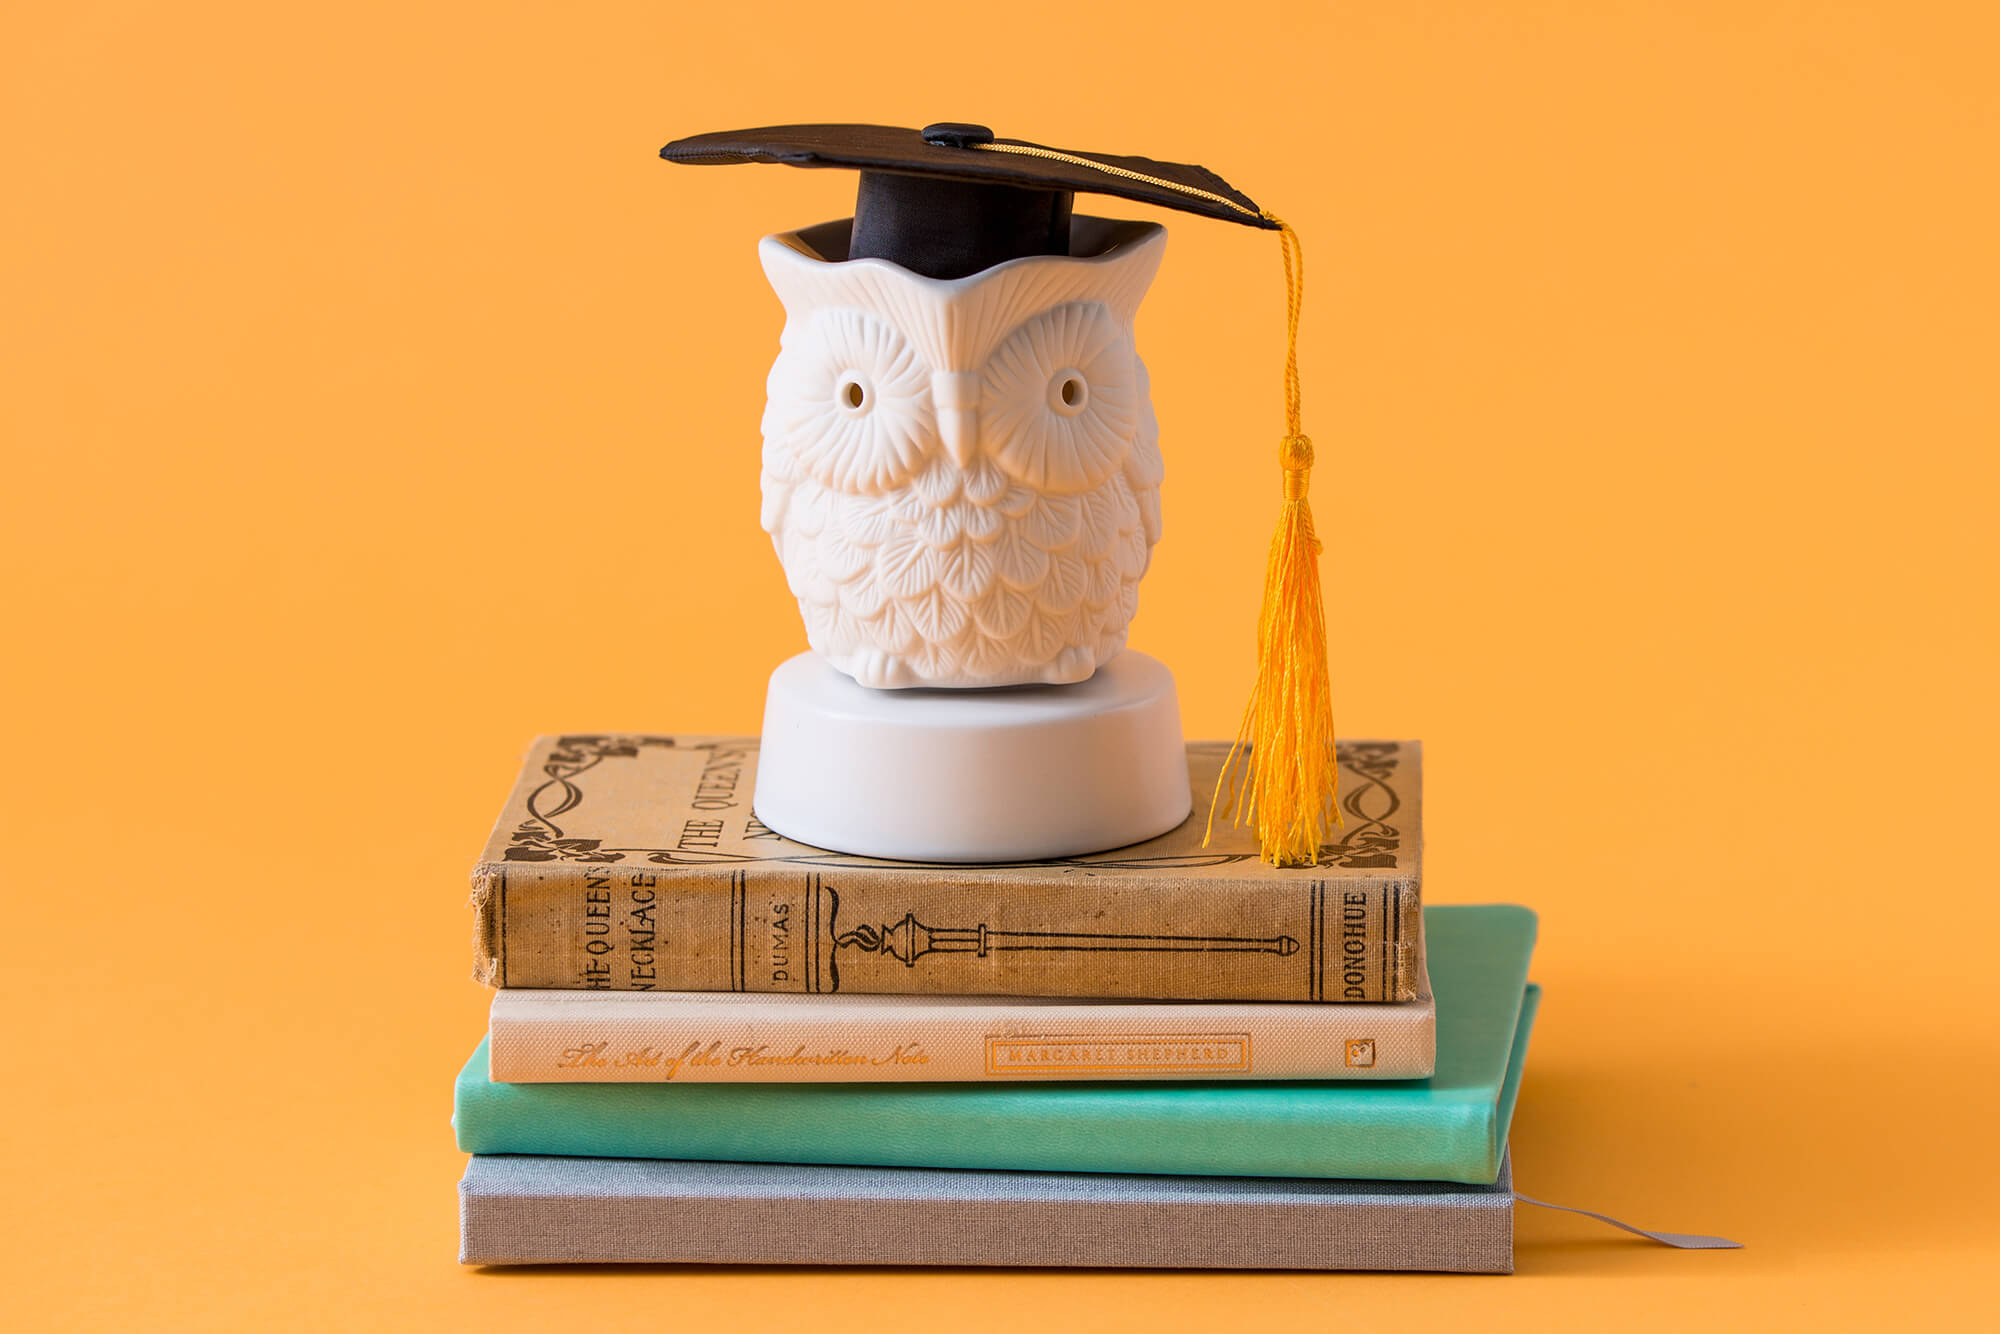 Scentsy Whoot! Mini Warmer on a stack of books with a graduation cap on